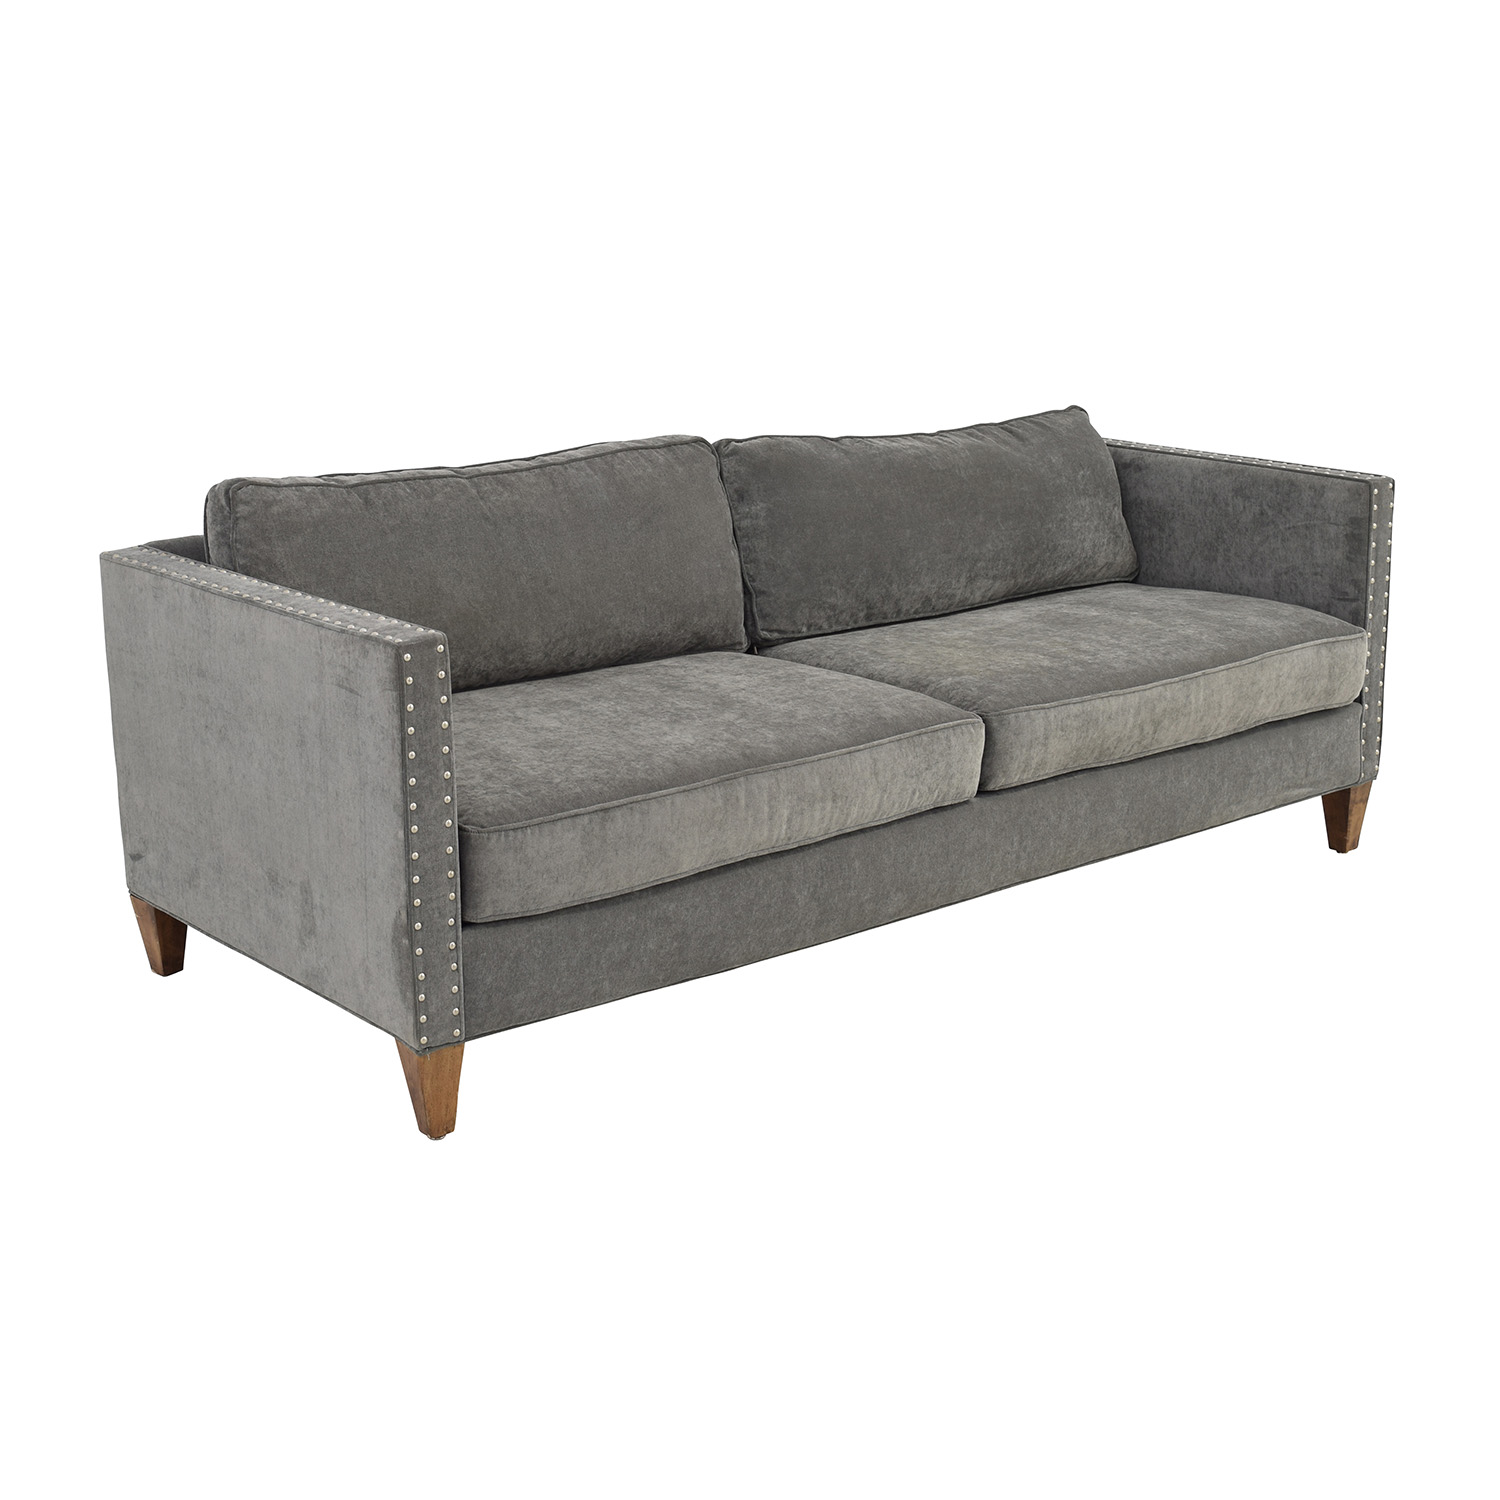 aidan gray sofa table white wicker outdoor grey studded sofas and loveseats leather couch ethan